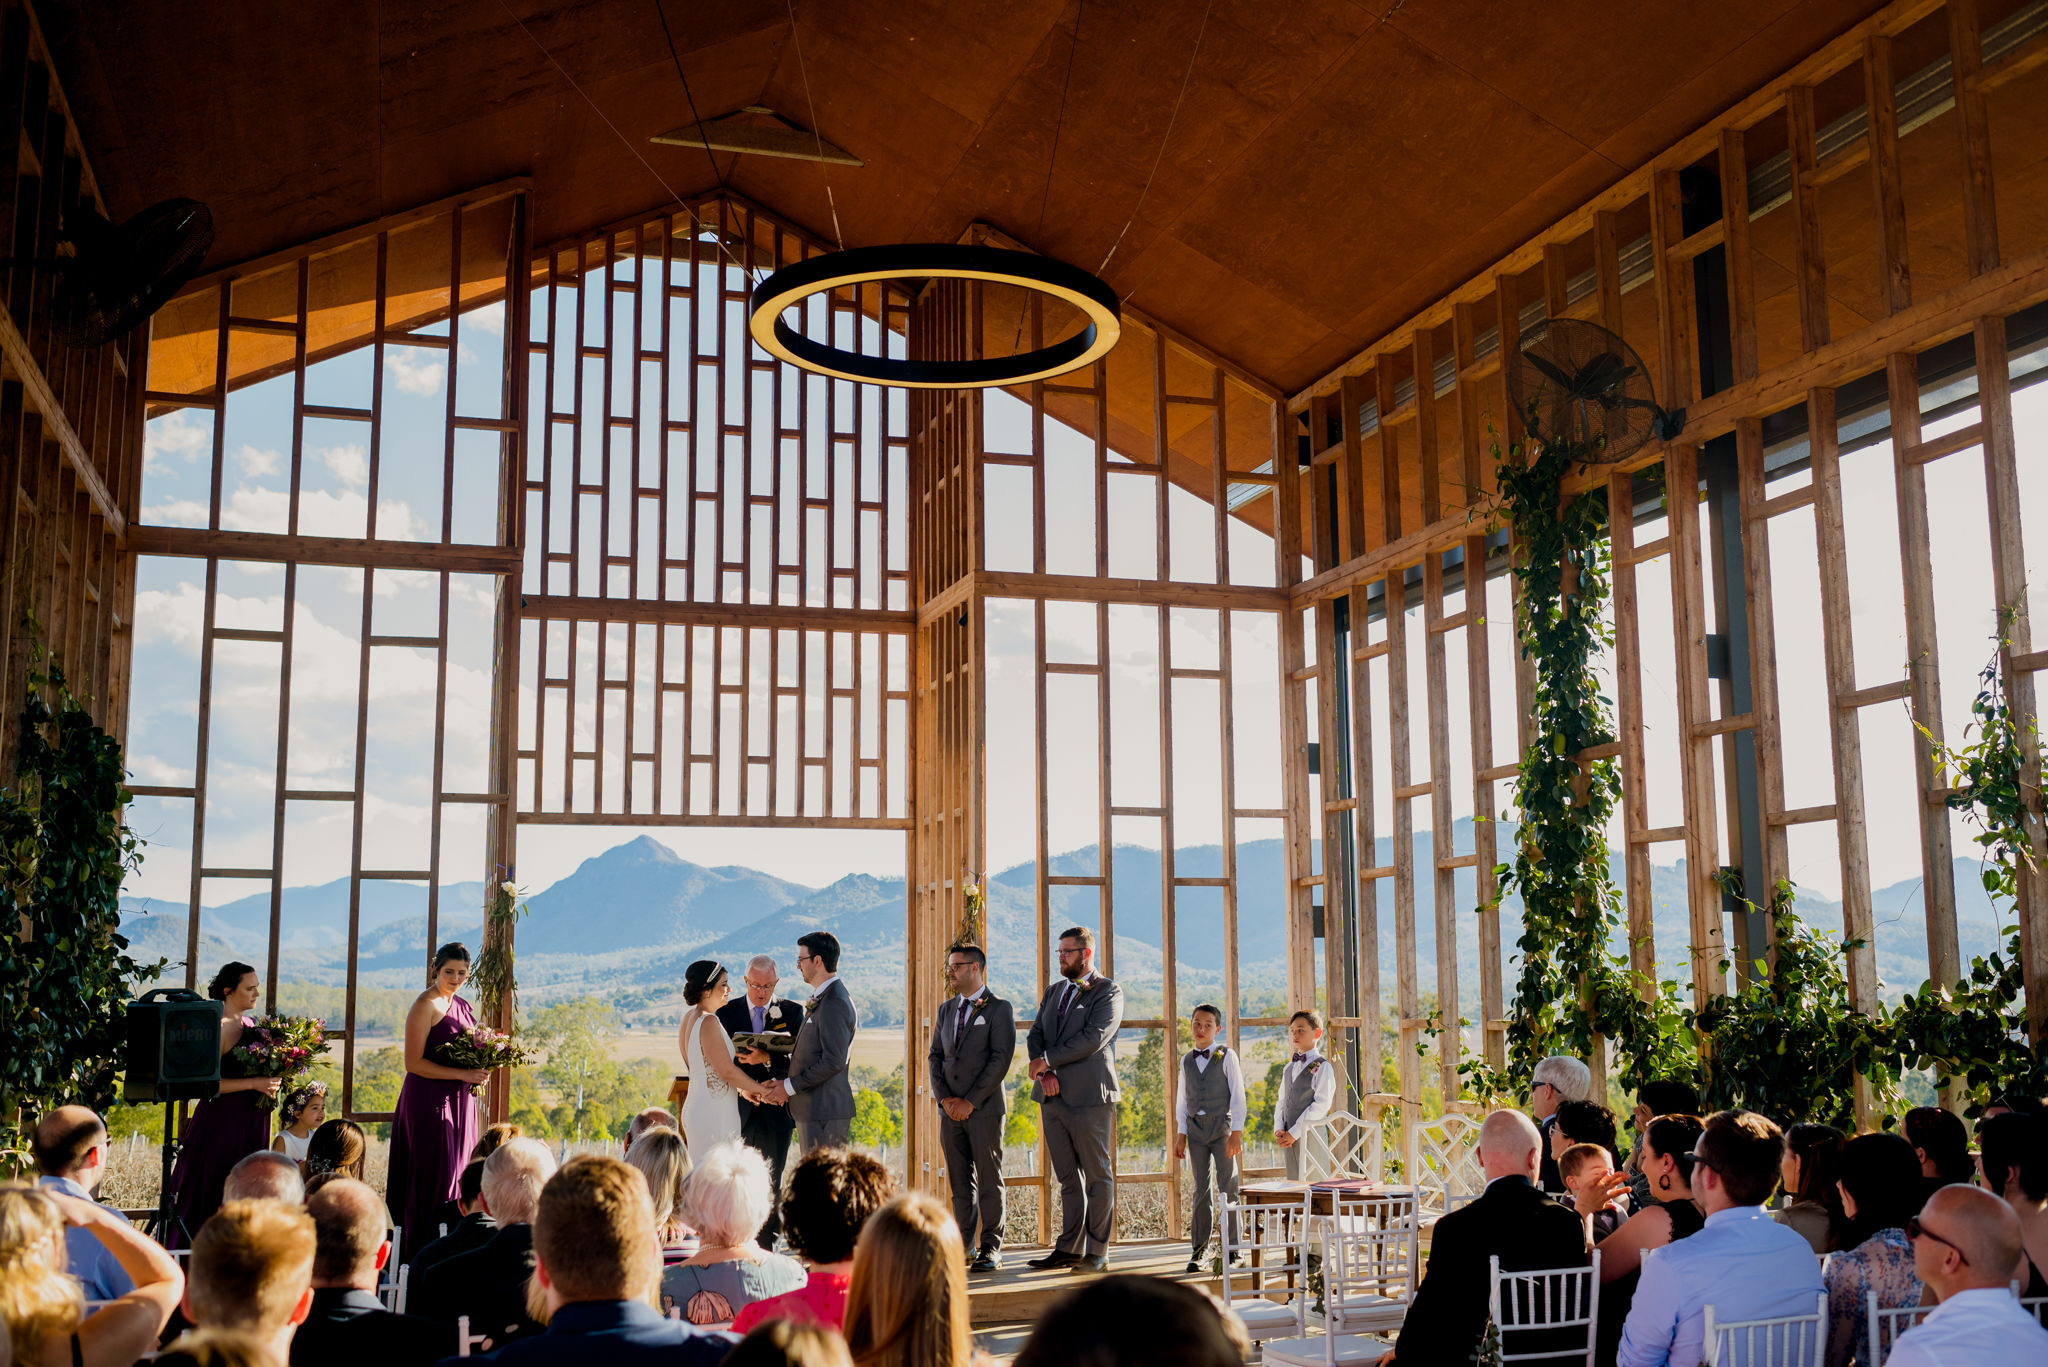 A wedding ceremony inside Kooroomba Lavender Farm's wedding chapel